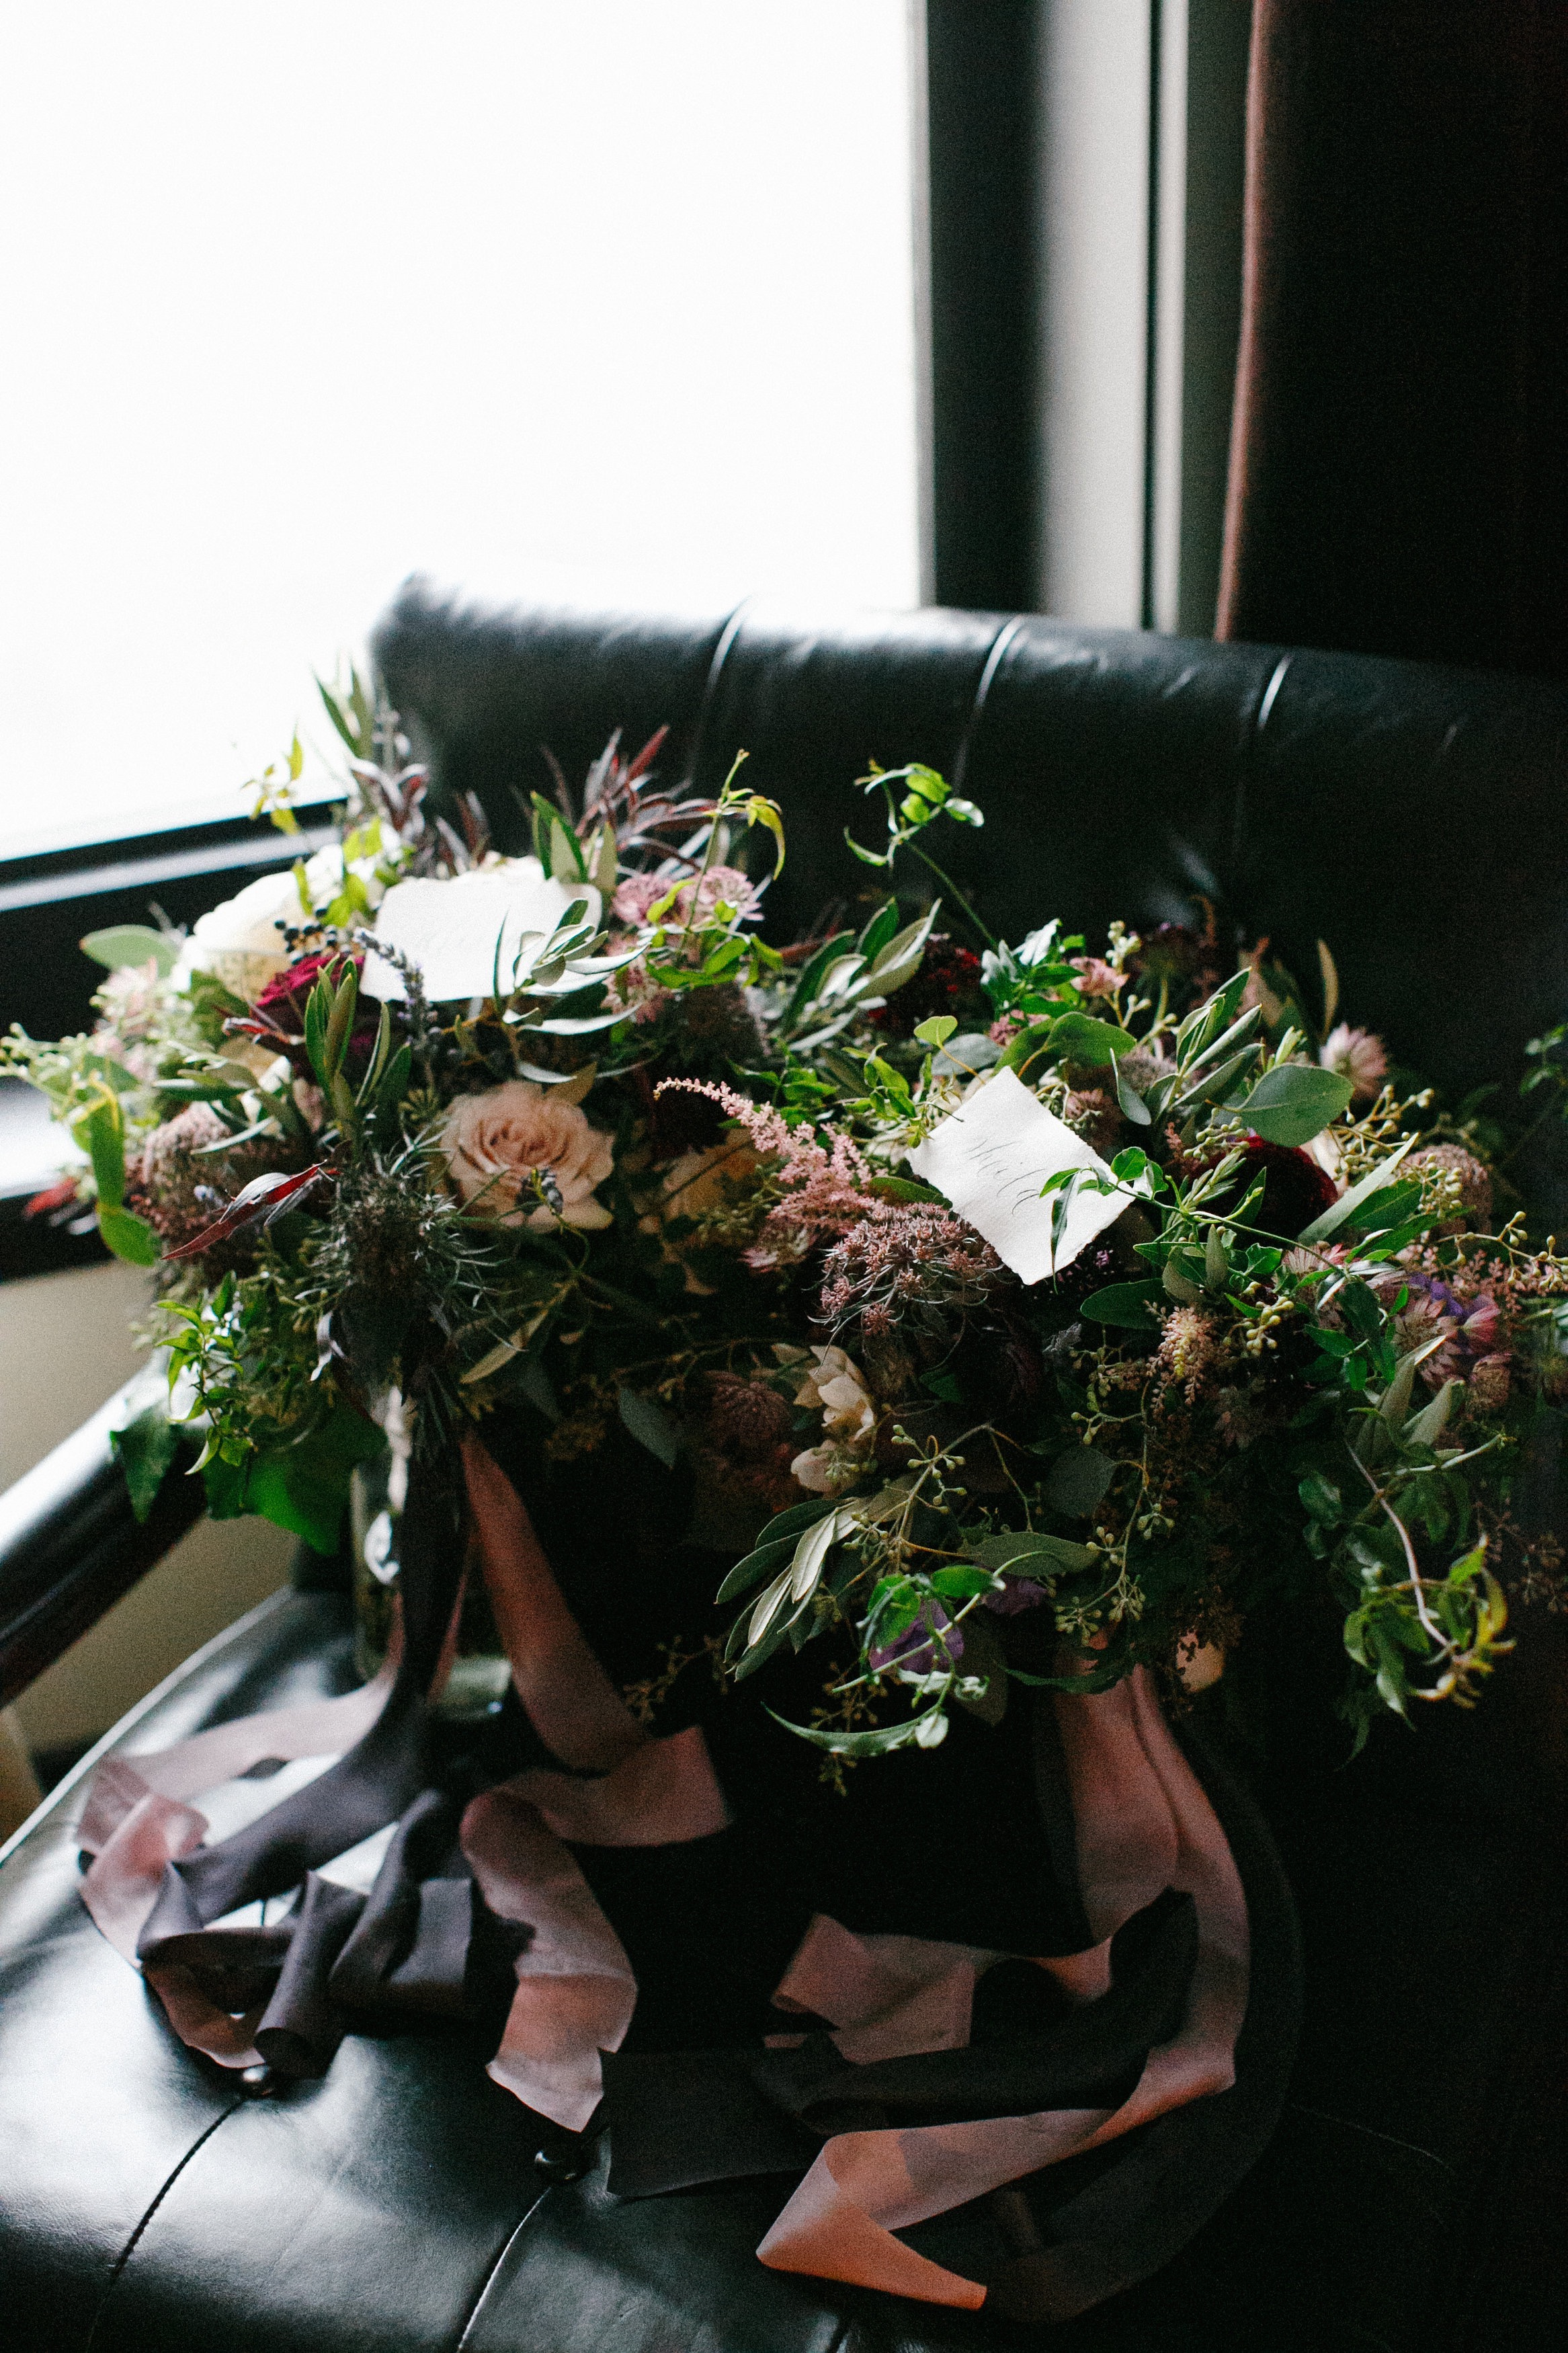 Posted by Life In Bloom - A Design/Decor/Floral professional